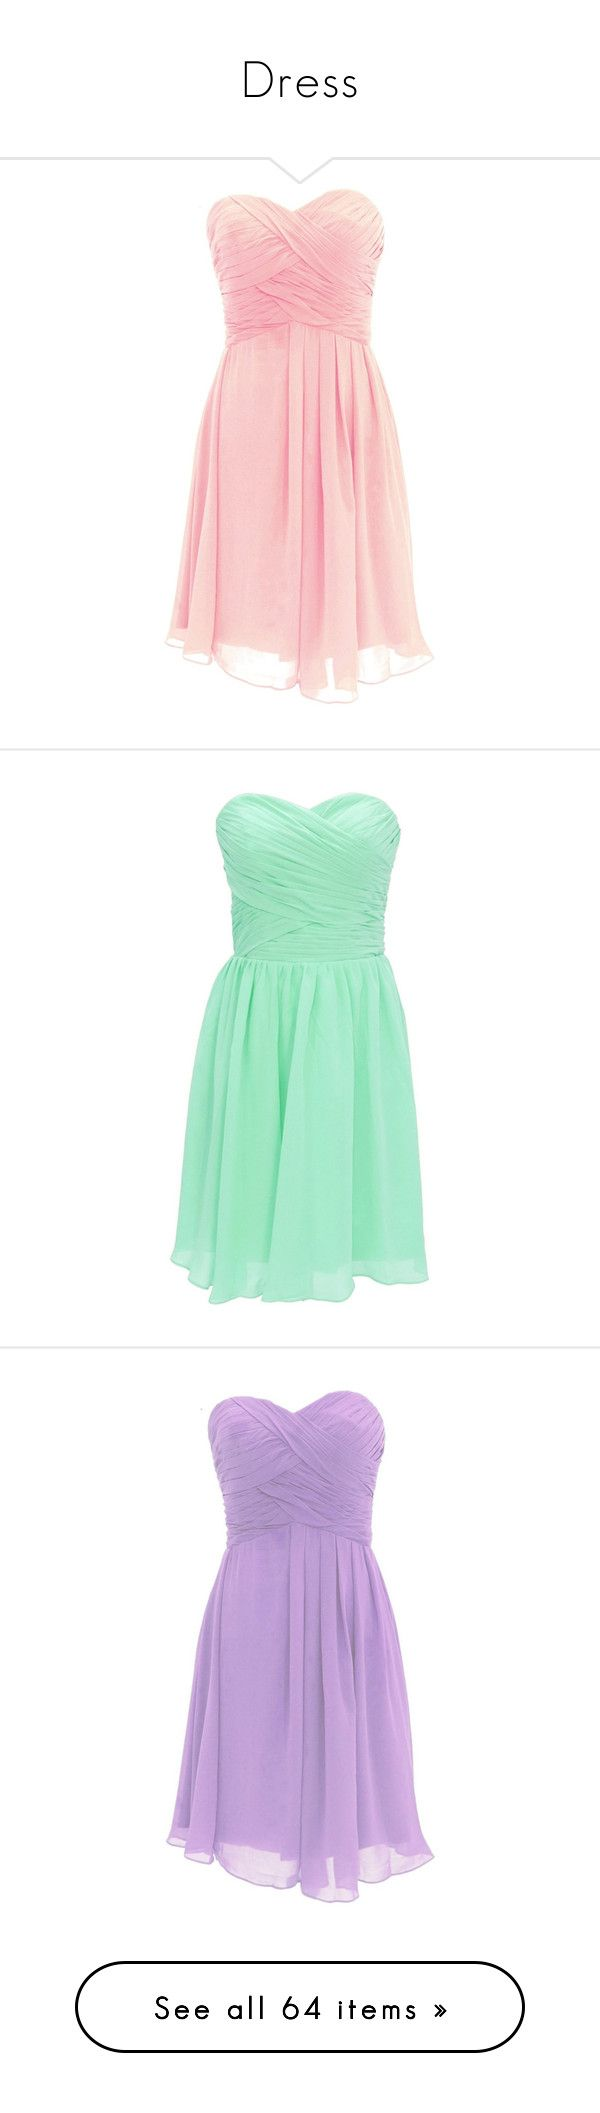 """""""Dress"""" by fiori-cas ❤ liked on Polyvore featuring dresses, mini dress, pink cocktail dress, pink mini dress, pink dress, short pink dress, green cocktail dress, green mini dress, green dress and short green dress"""